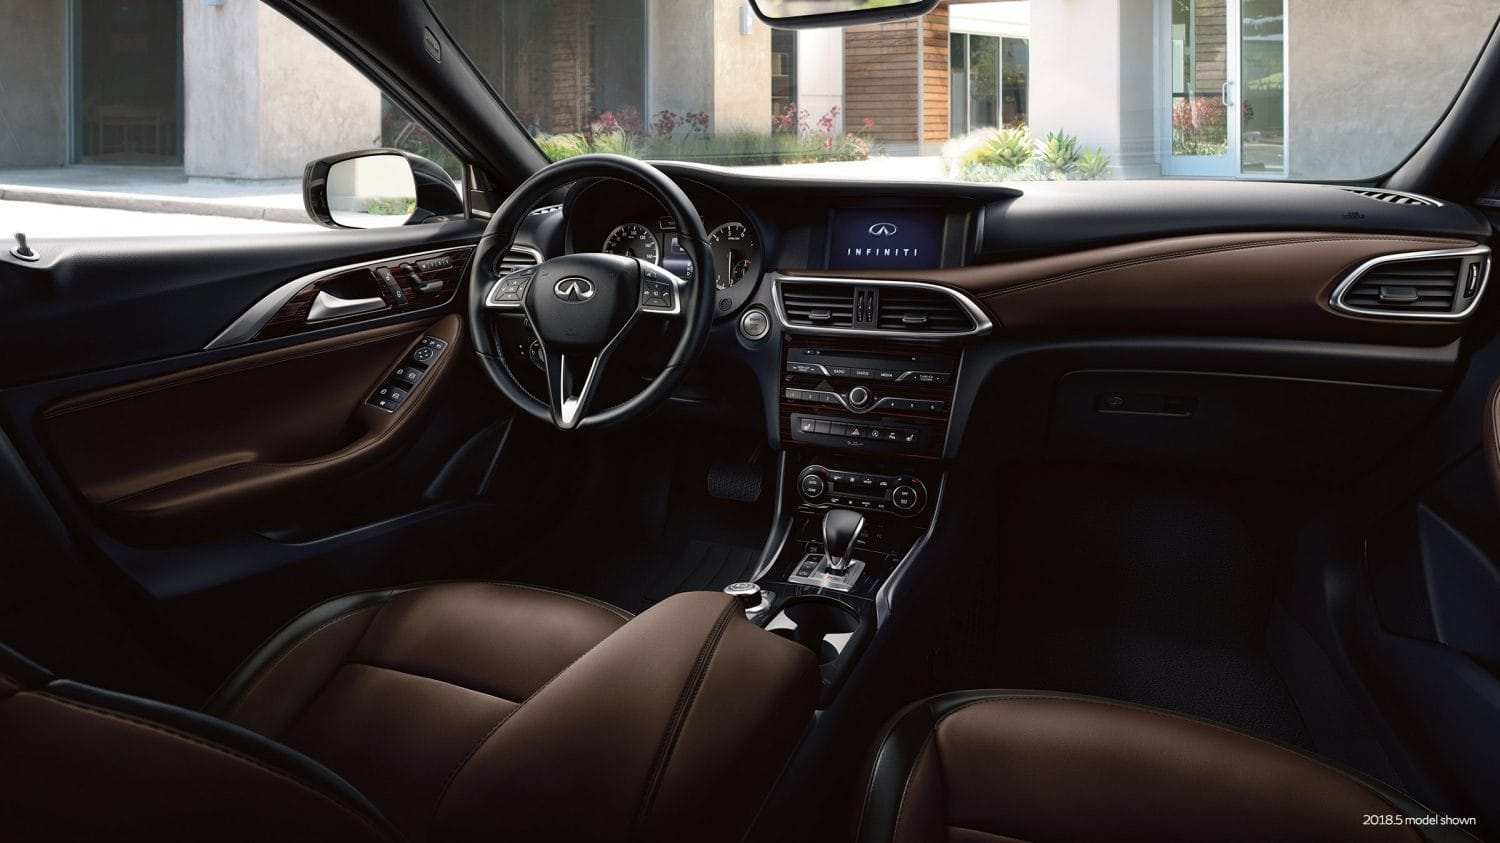 66 All New 2019 Infiniti Interior Redesign And Review